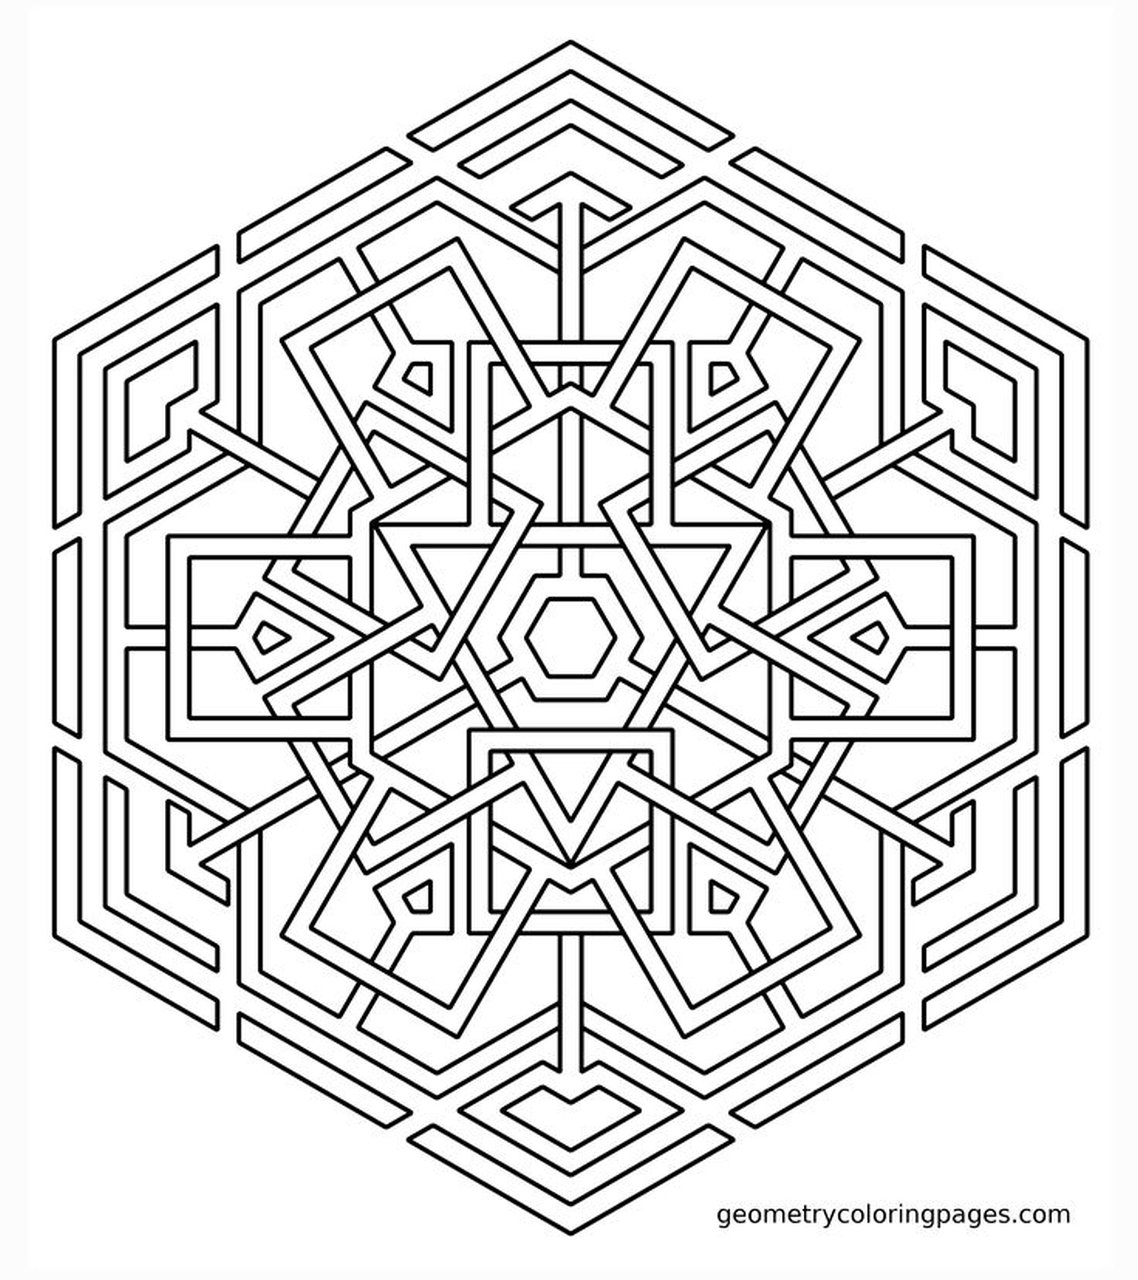 Get This Hard Geometric Coloring Pages To Print Out